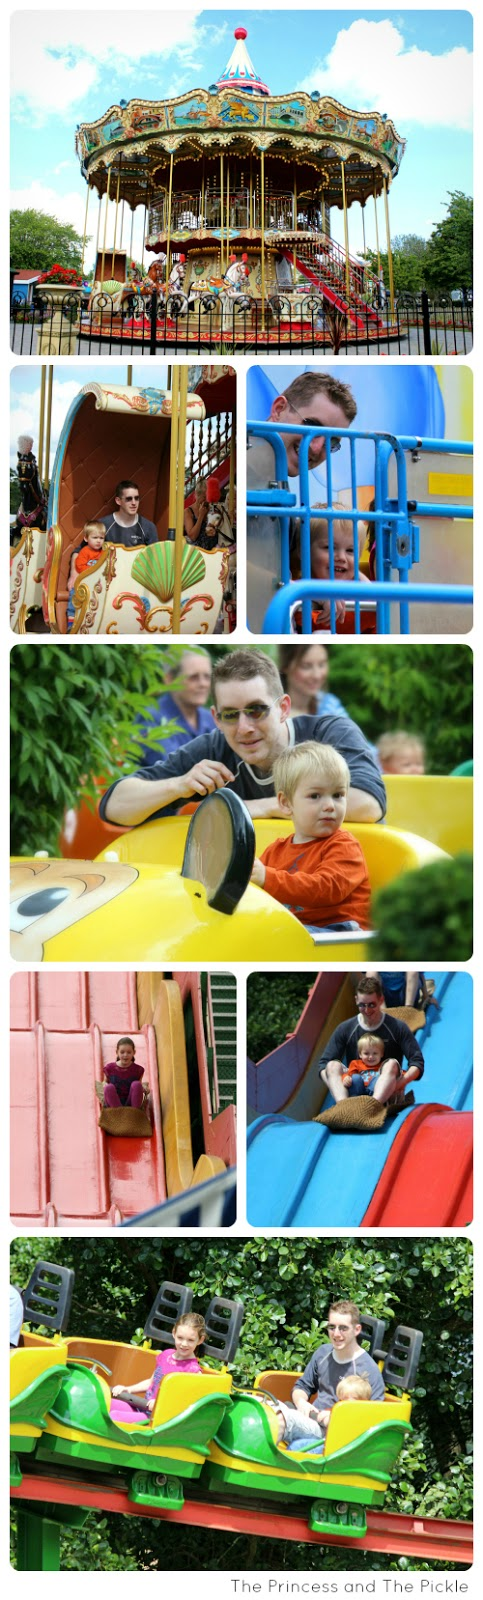 The Princess and The Pickle at Paultons Park